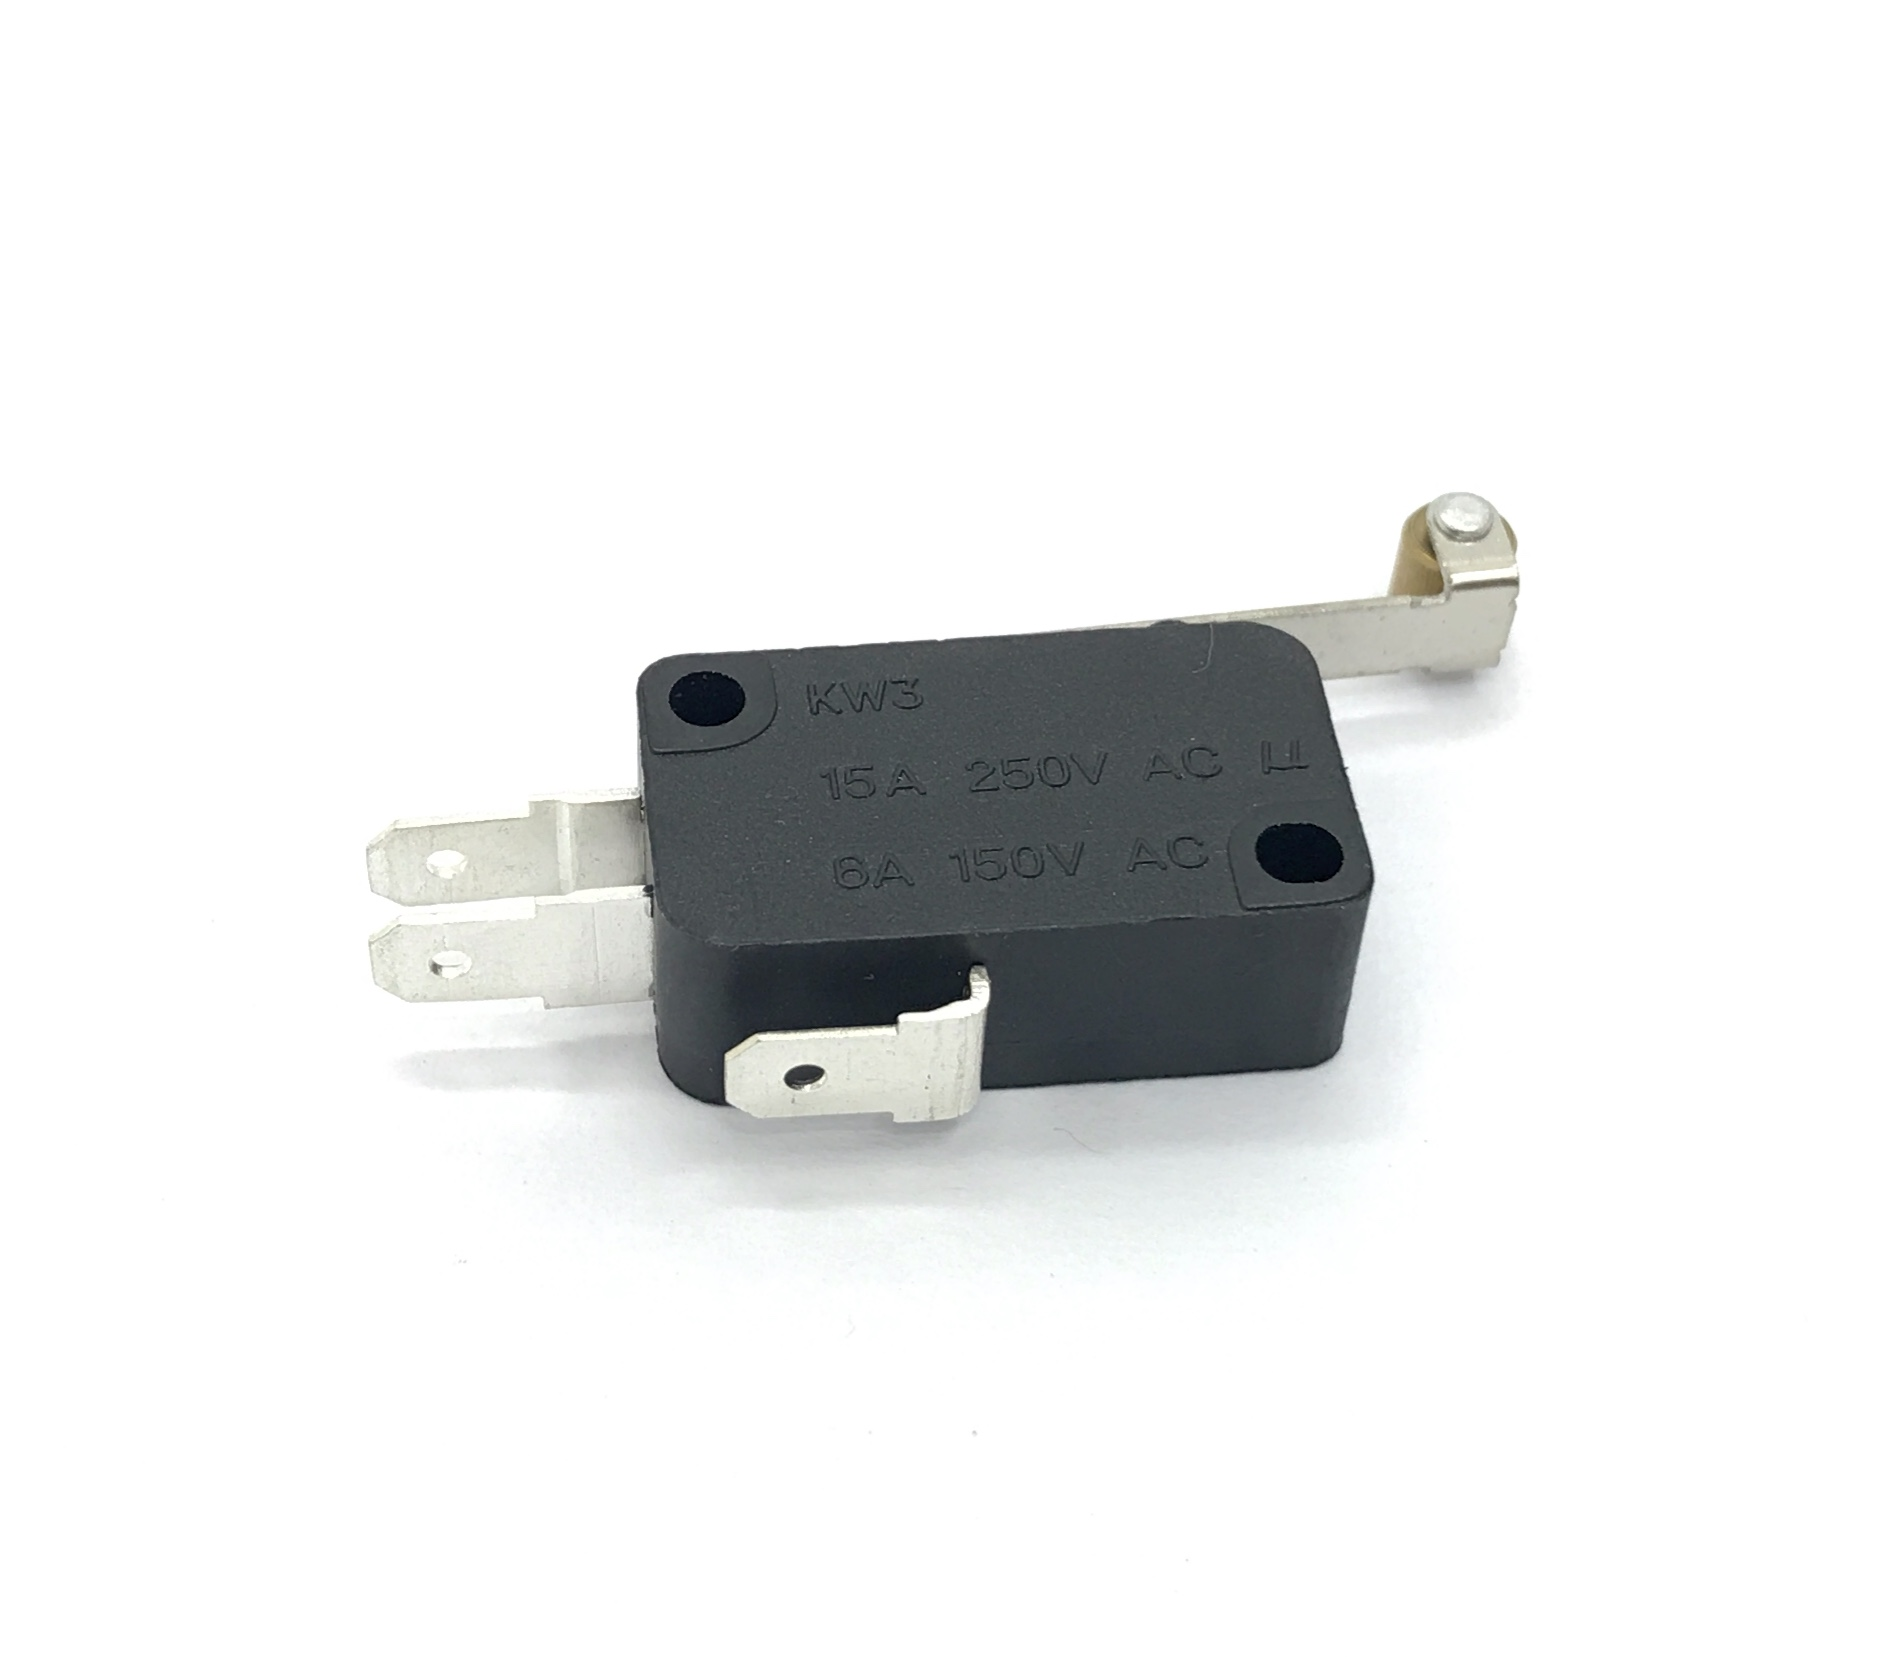 MICRO SWITCH KW3 15A 250V / 6A 150V (KW11-7) C/ HASTE E ROLDADA 27MM CQC